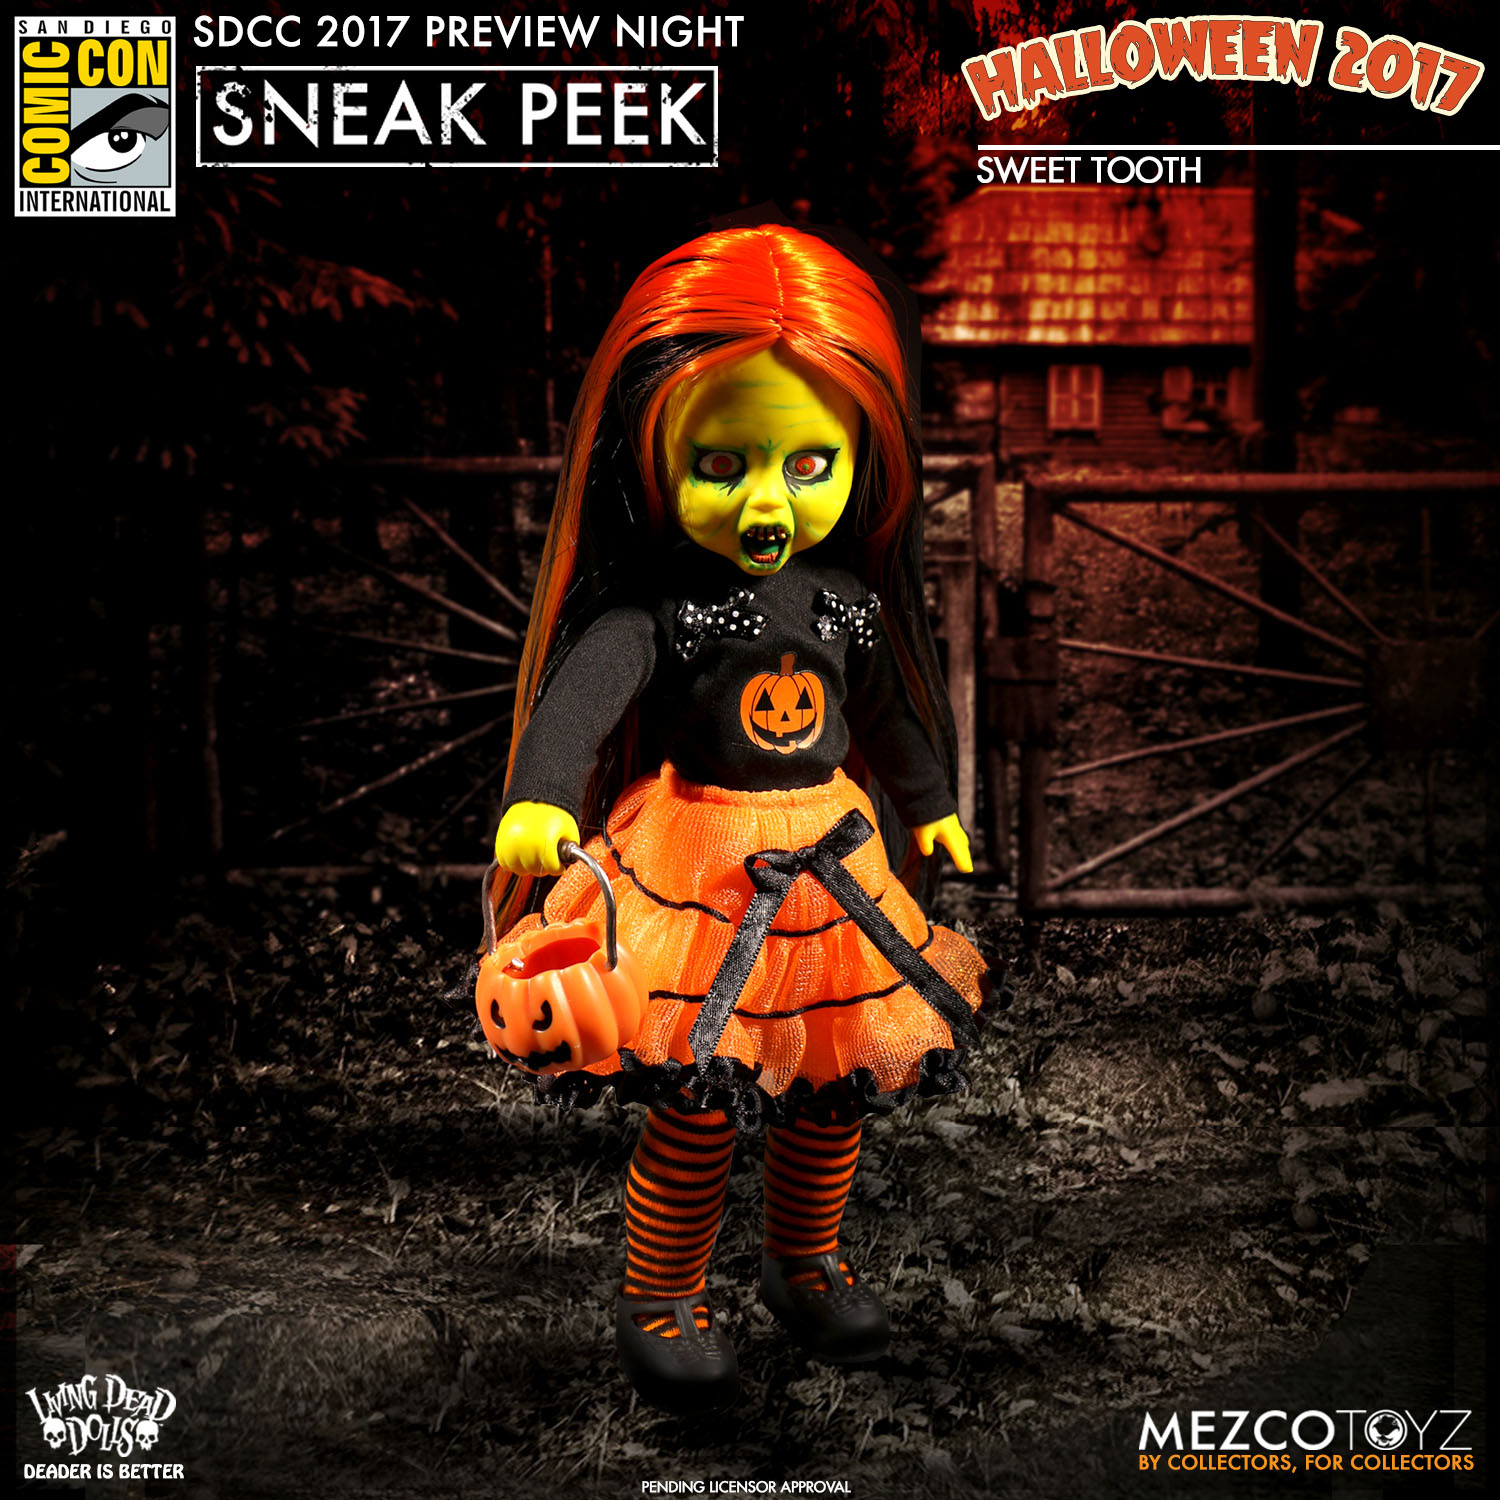 Mezco Previews New One:12 Collective and More for SDCC 2017 - The ...